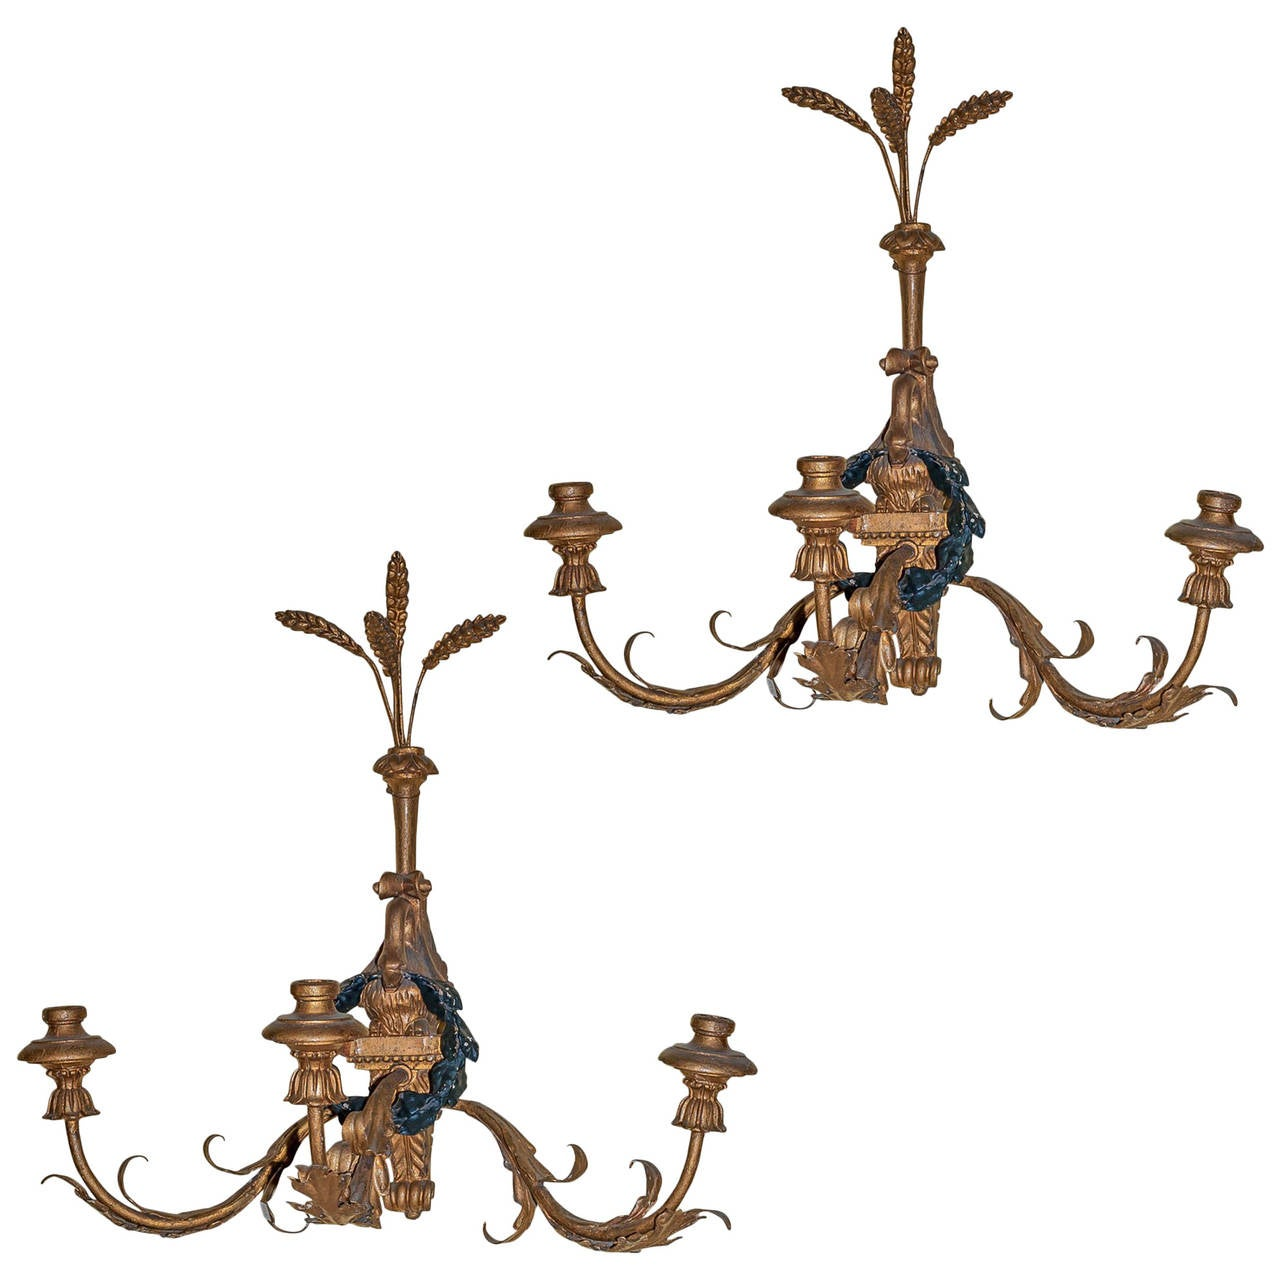 Pair of Giltwood and Tole Three-Arm Wall Light Sconces